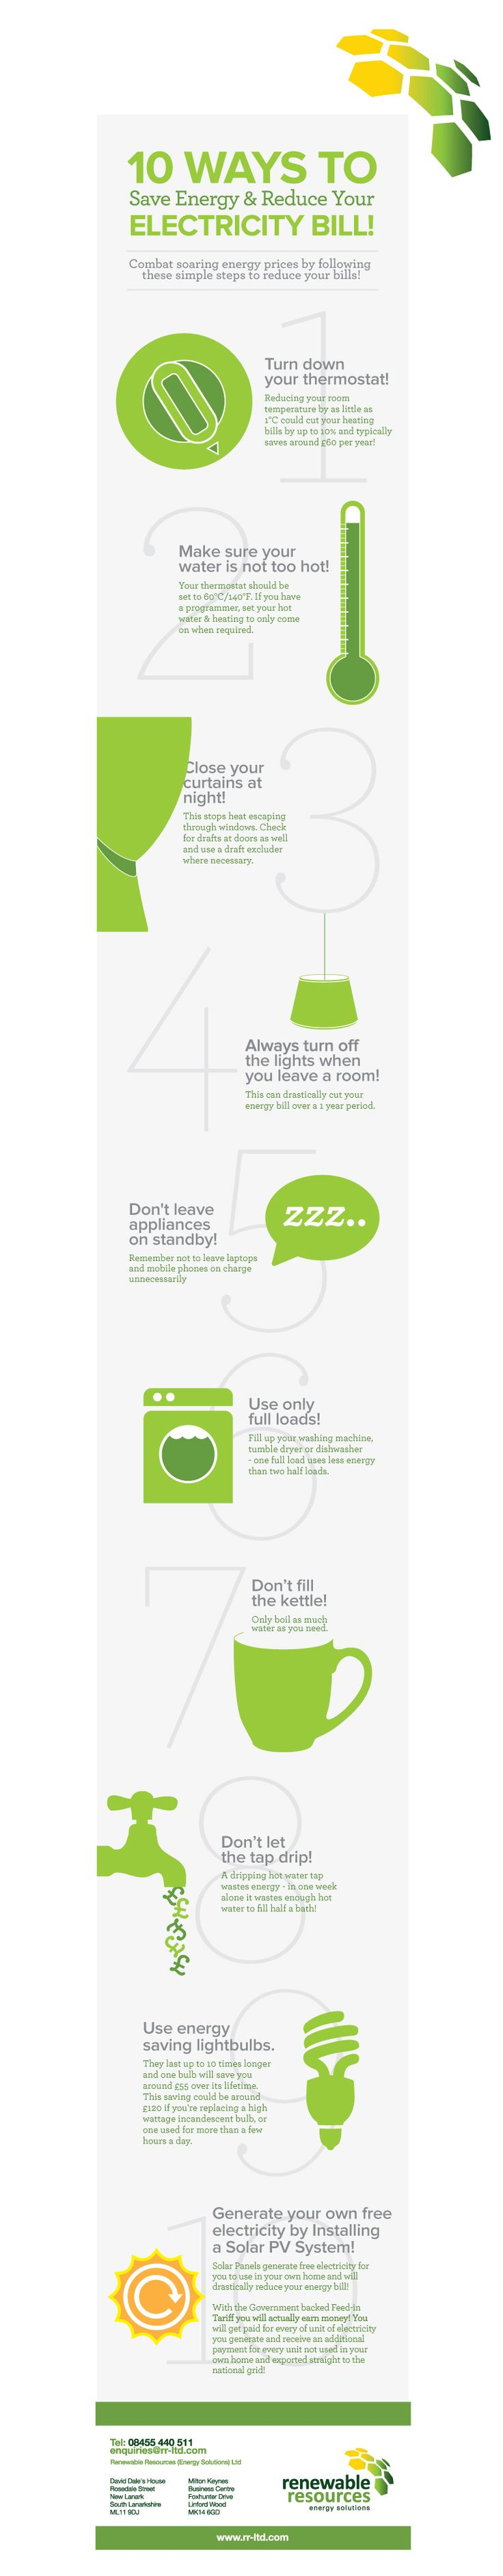 10 Ways To Save Money & Reduce Your Electricity Bill